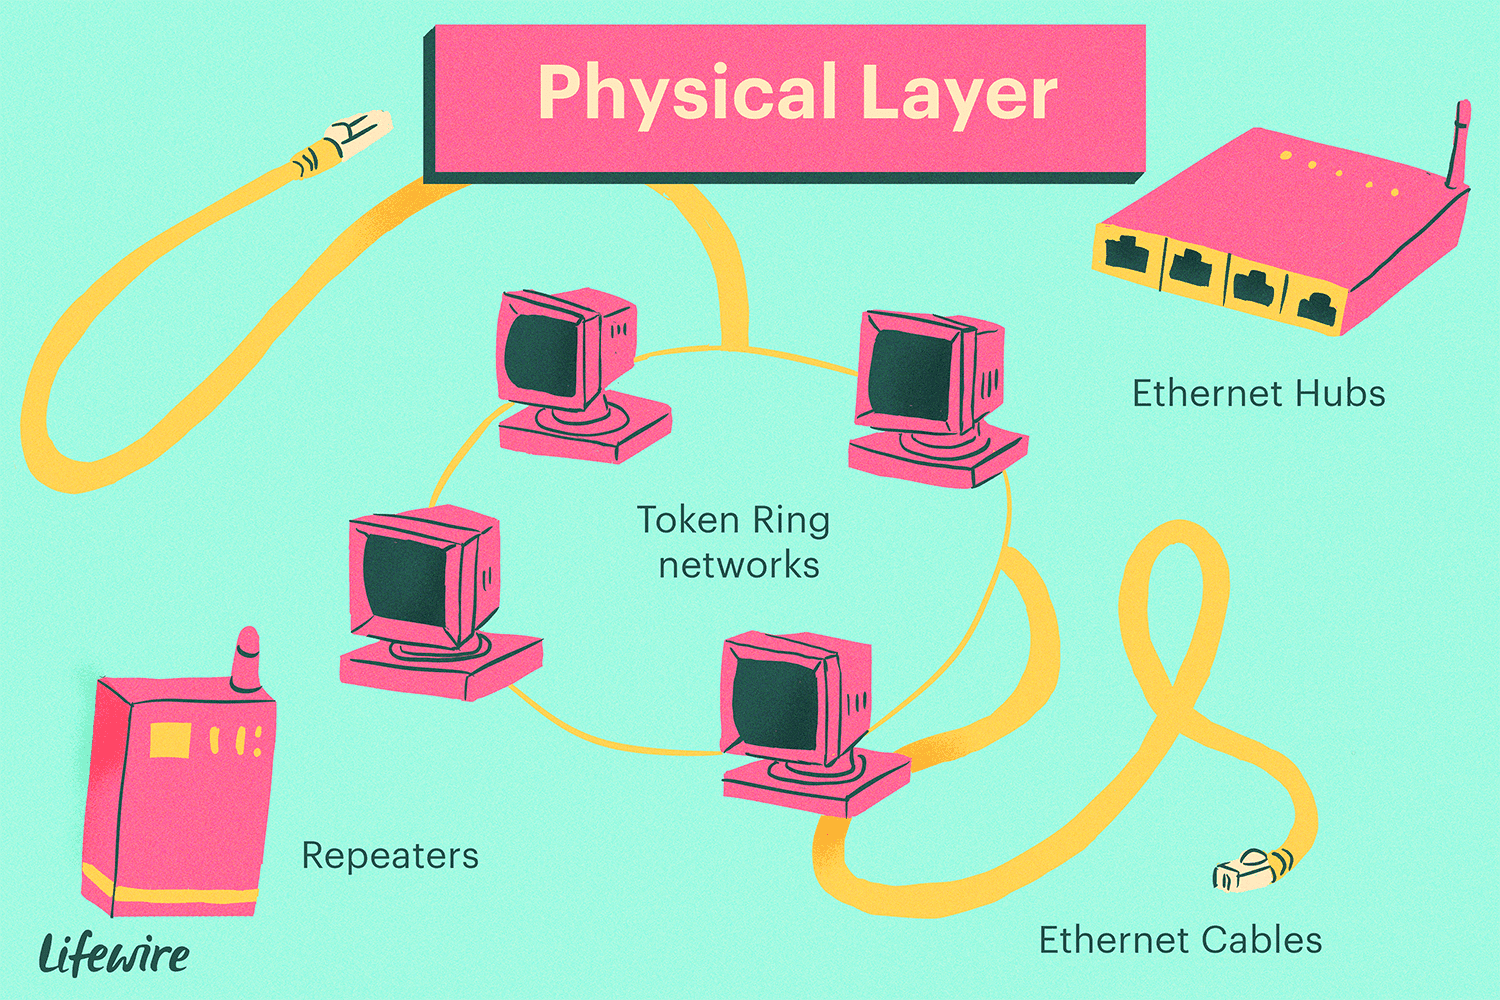 Illustration of Physical Layer, showing repeaters, ethernet cables and hubs, and token ring networks